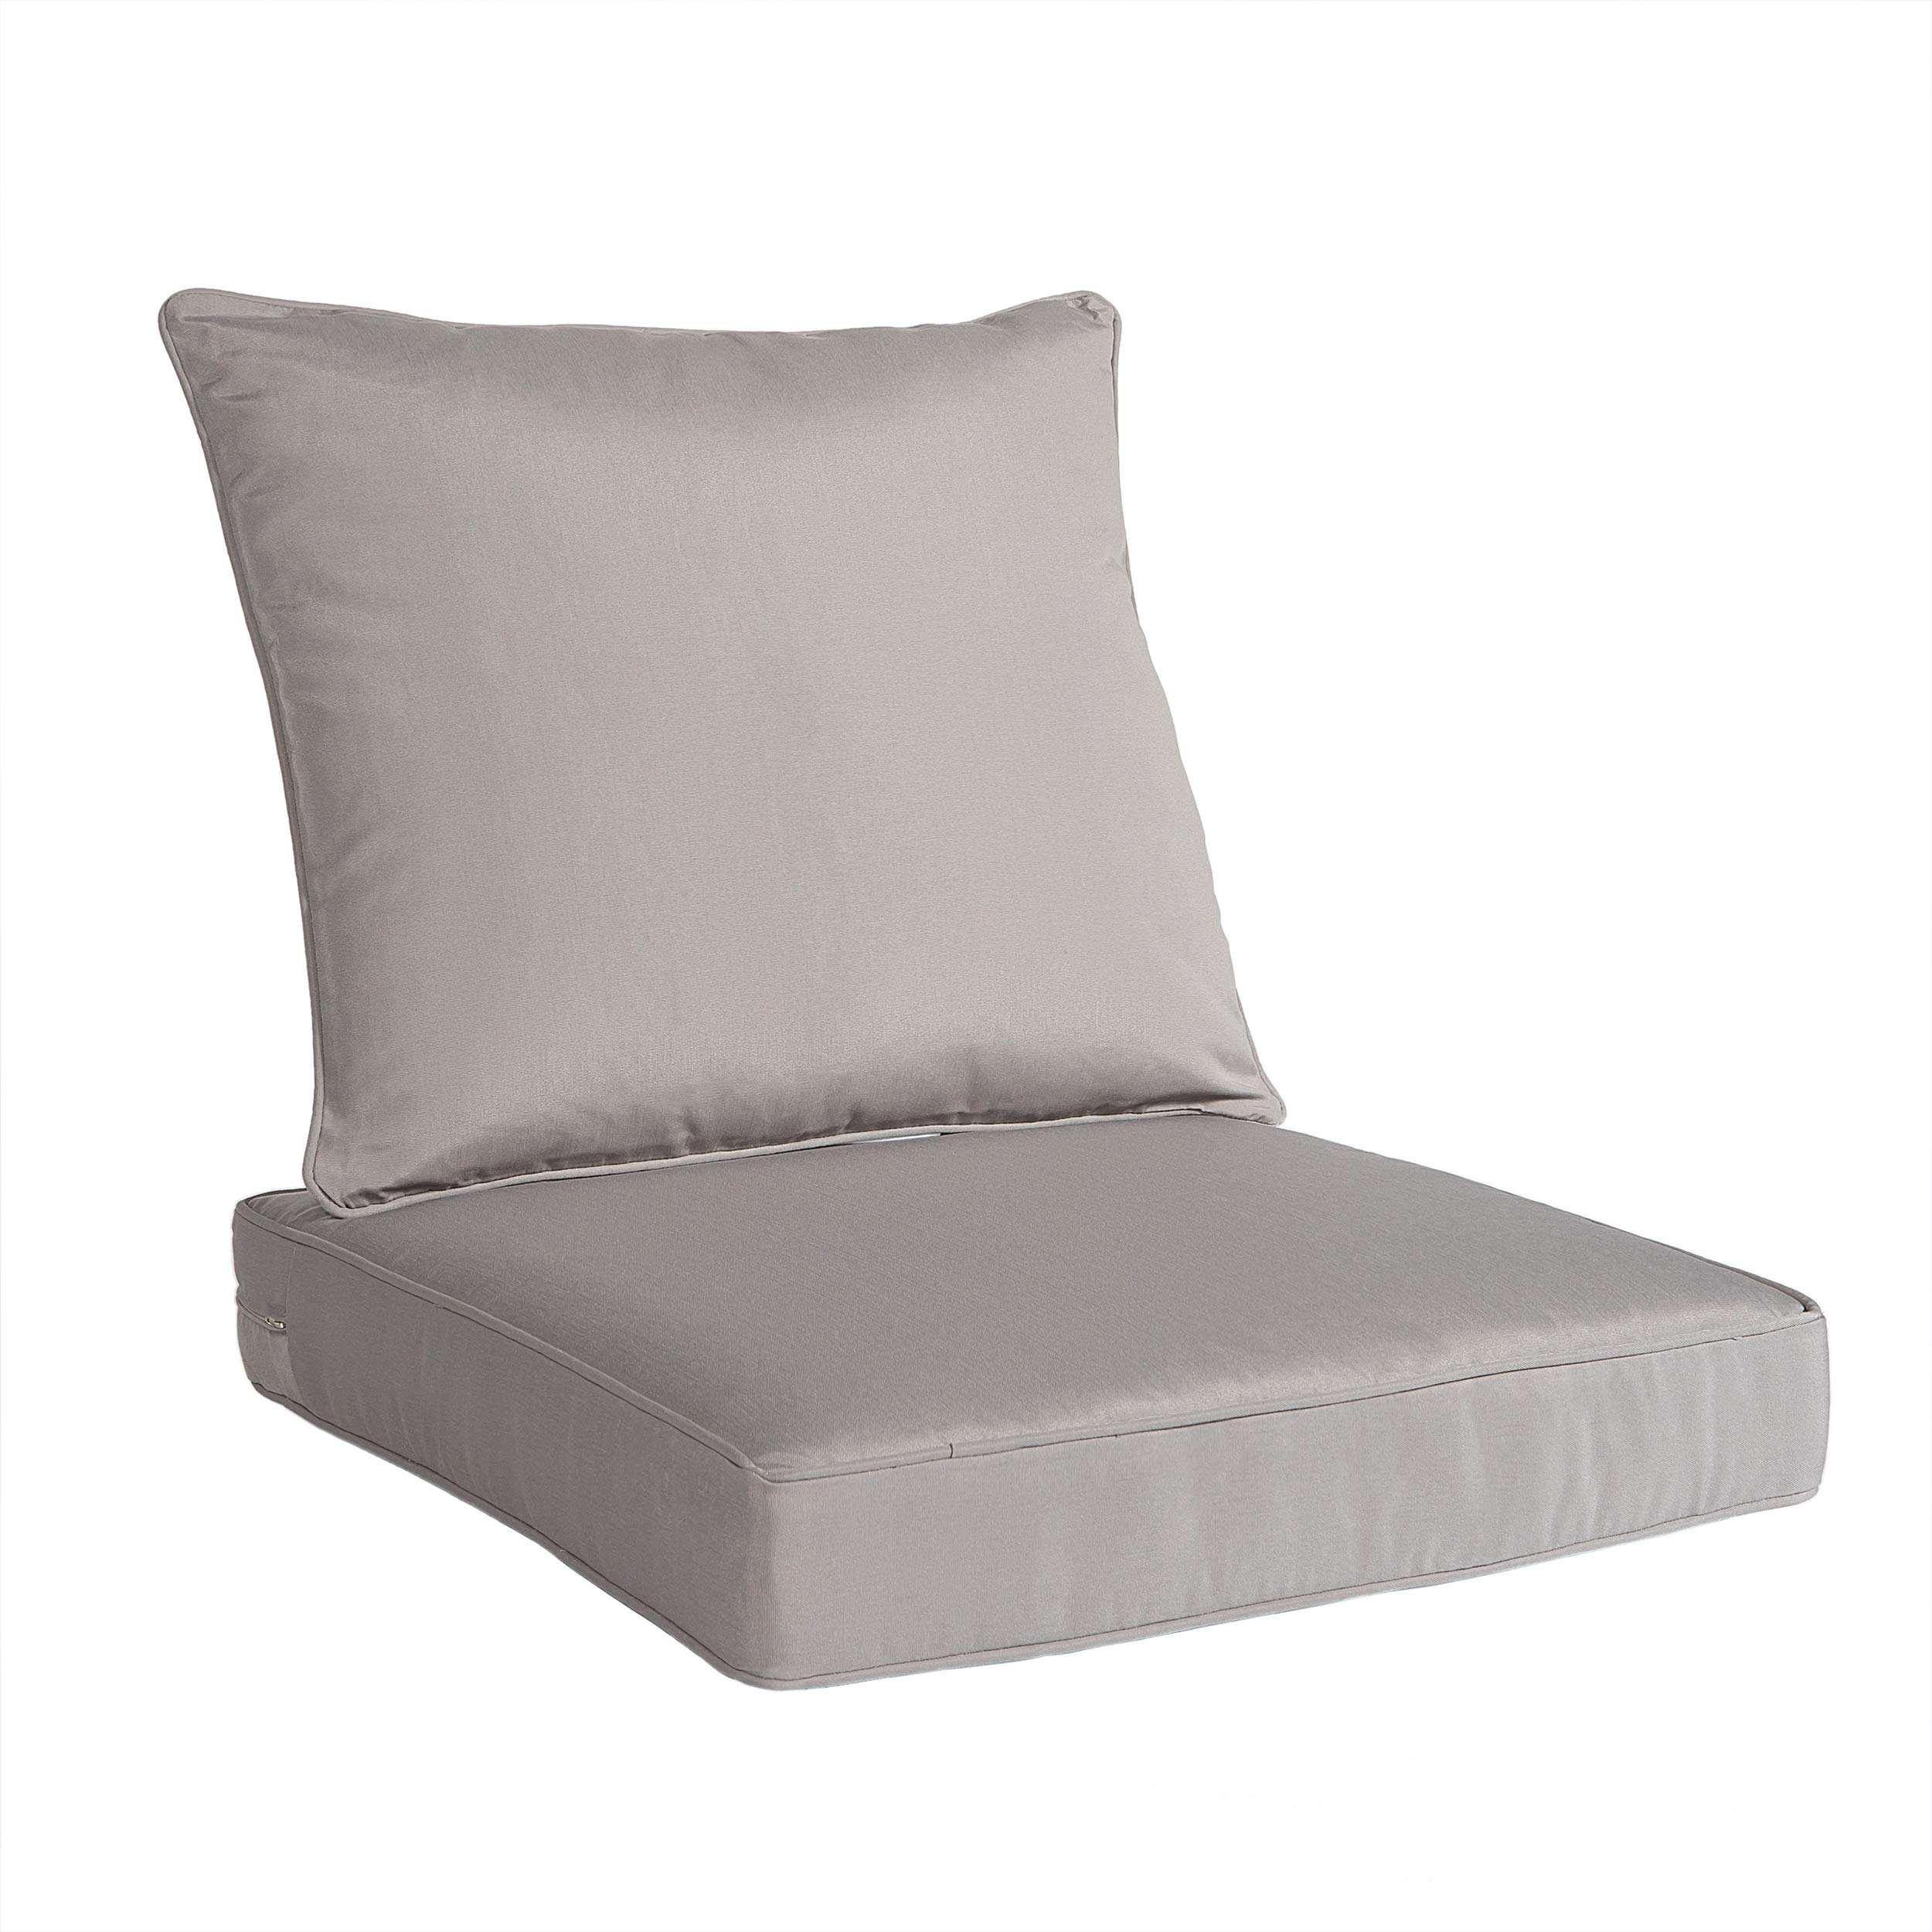 Art Leon Outdoor/Indoor Patio Deep Seat Chair Cushion Set, Including One Backrest and One Seat Cushion (Grey) by Art Leon